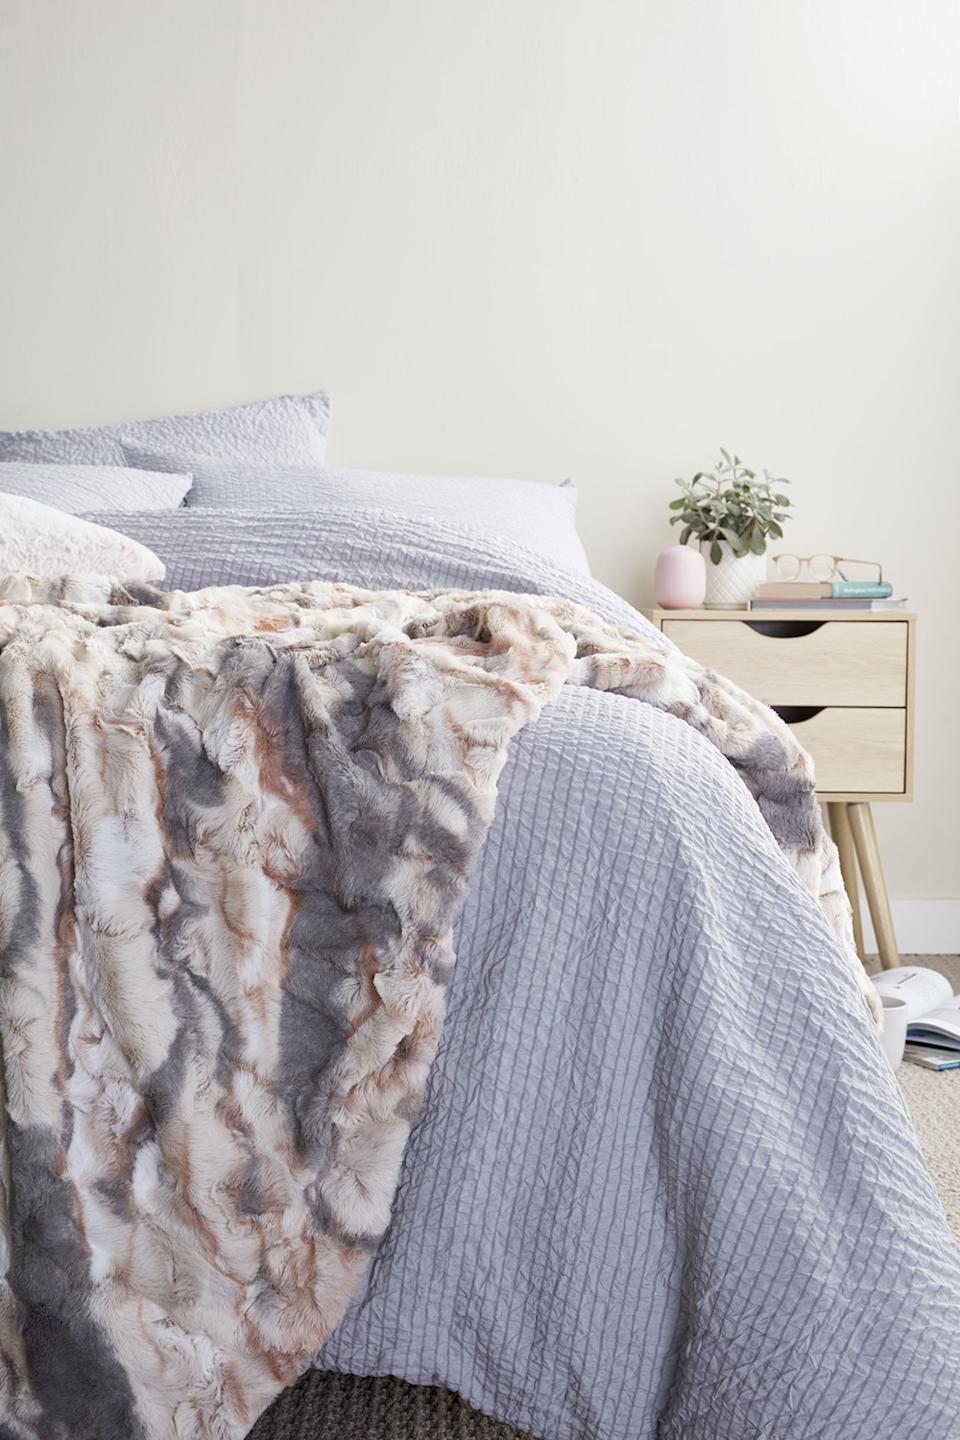 Coles will also be selling a $19.99 faux fur throw and a machine washable wool blend queen size doona for $54.99. Photo: Supplied